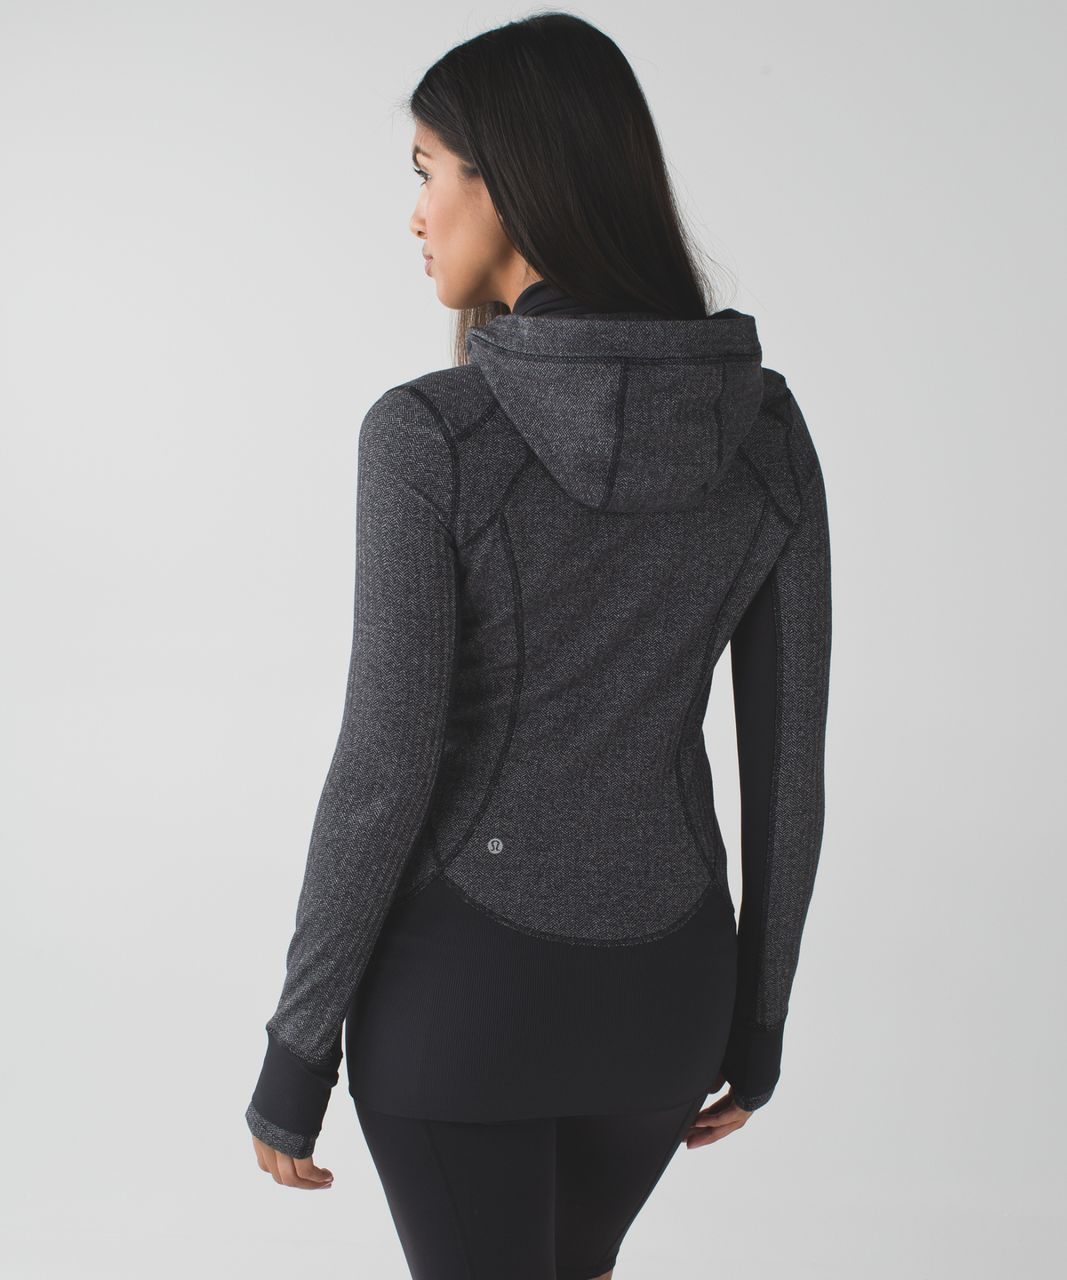 Lululemon Daily Practice Jacket - Heathered Herringbone Heathered Black Black